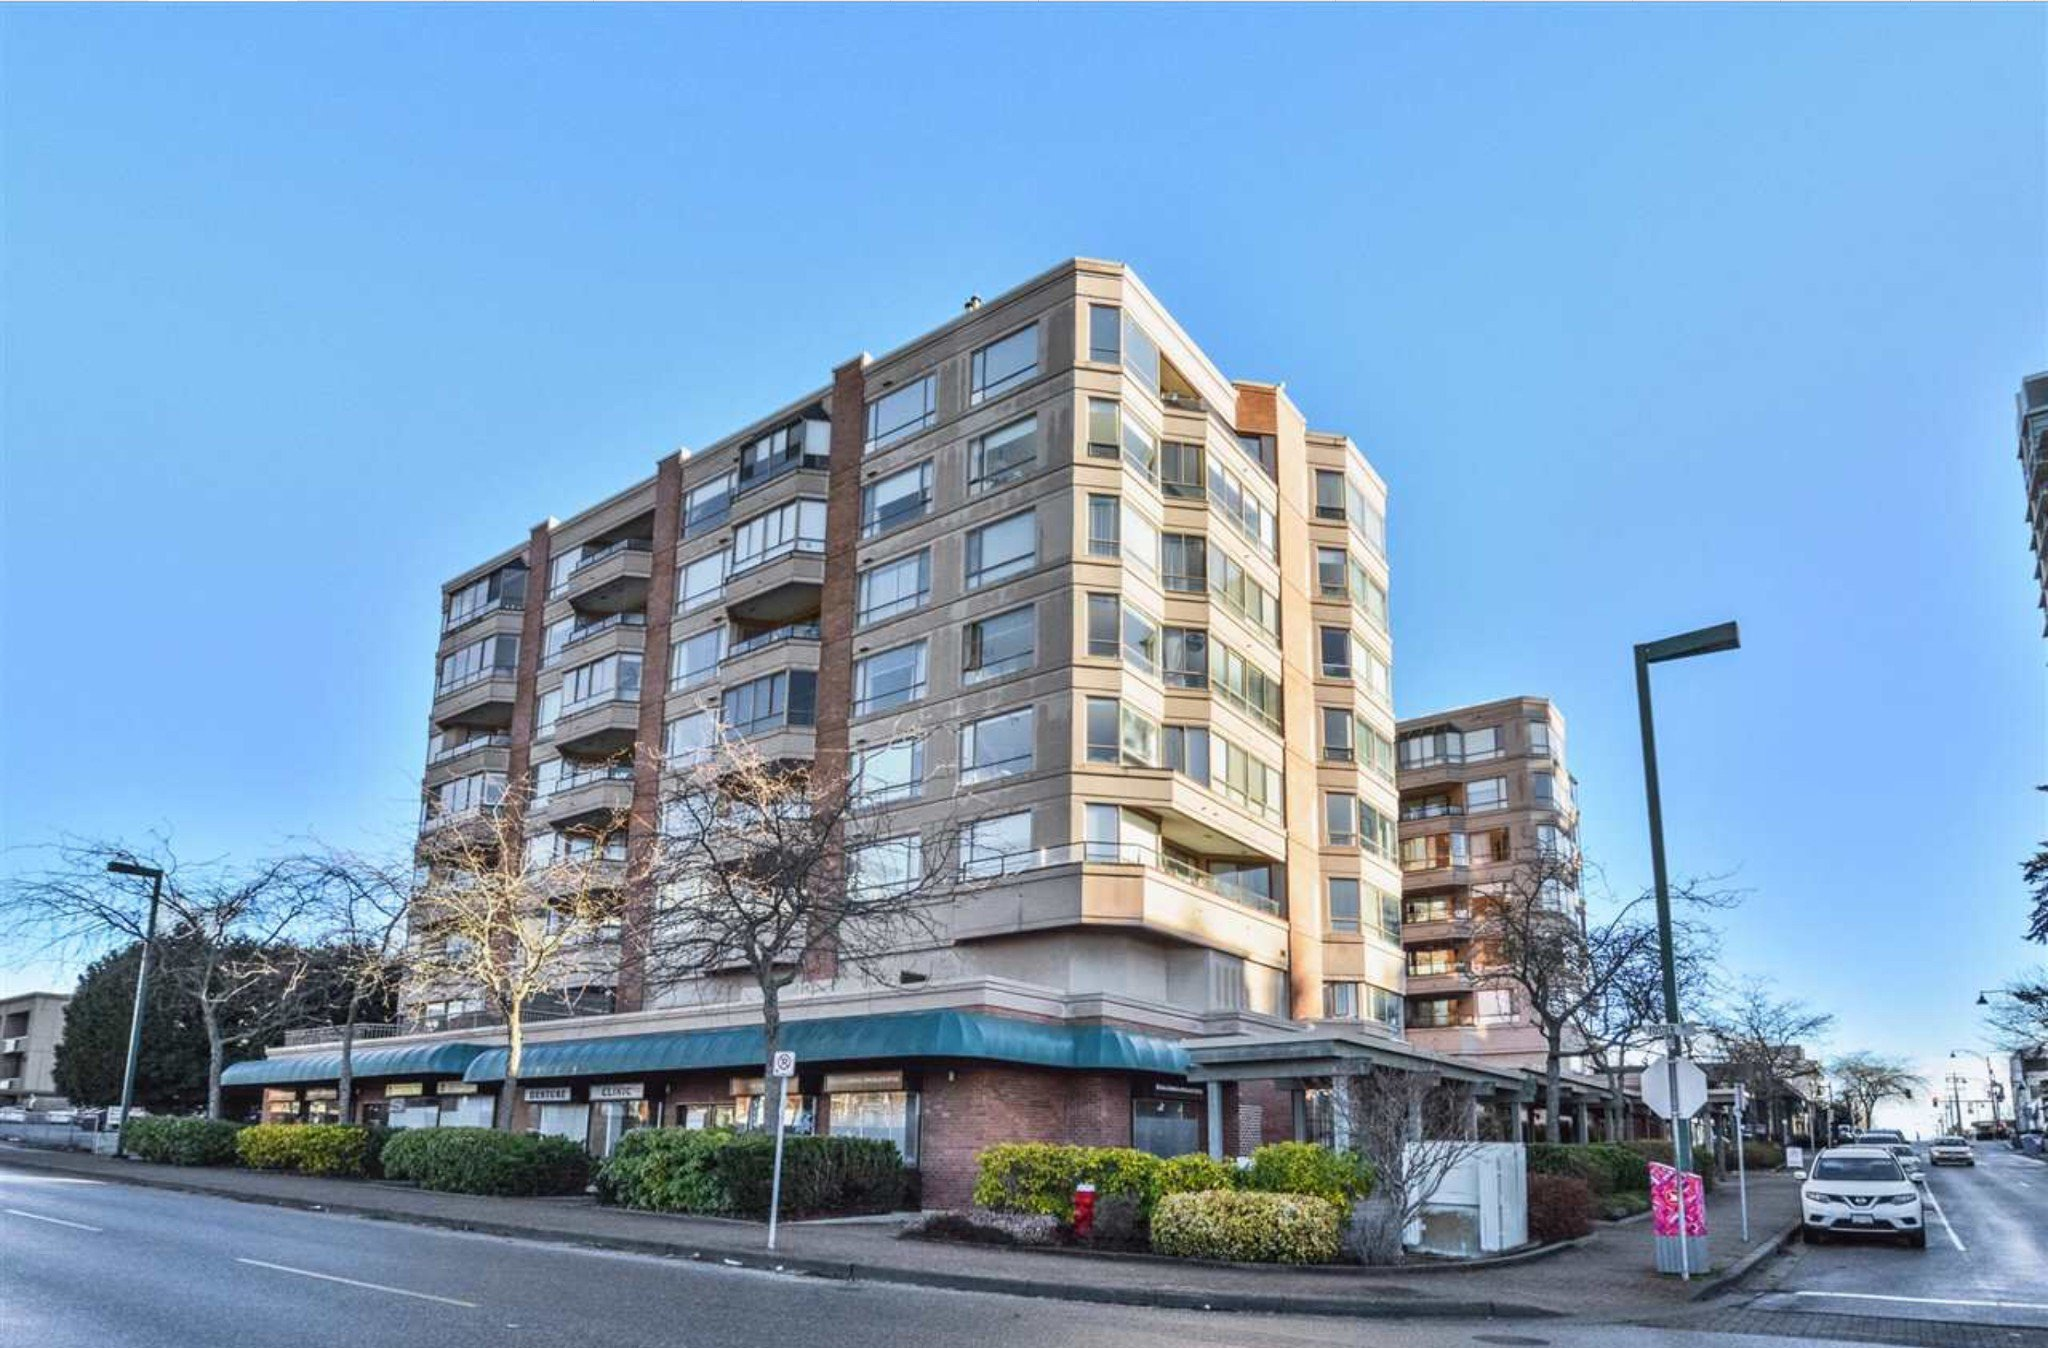 Photo 1: Photos: 405, 15111 Russell Avenue: White Rock Condo for sale (South Surrey White Rock)  : MLS®# R2133728